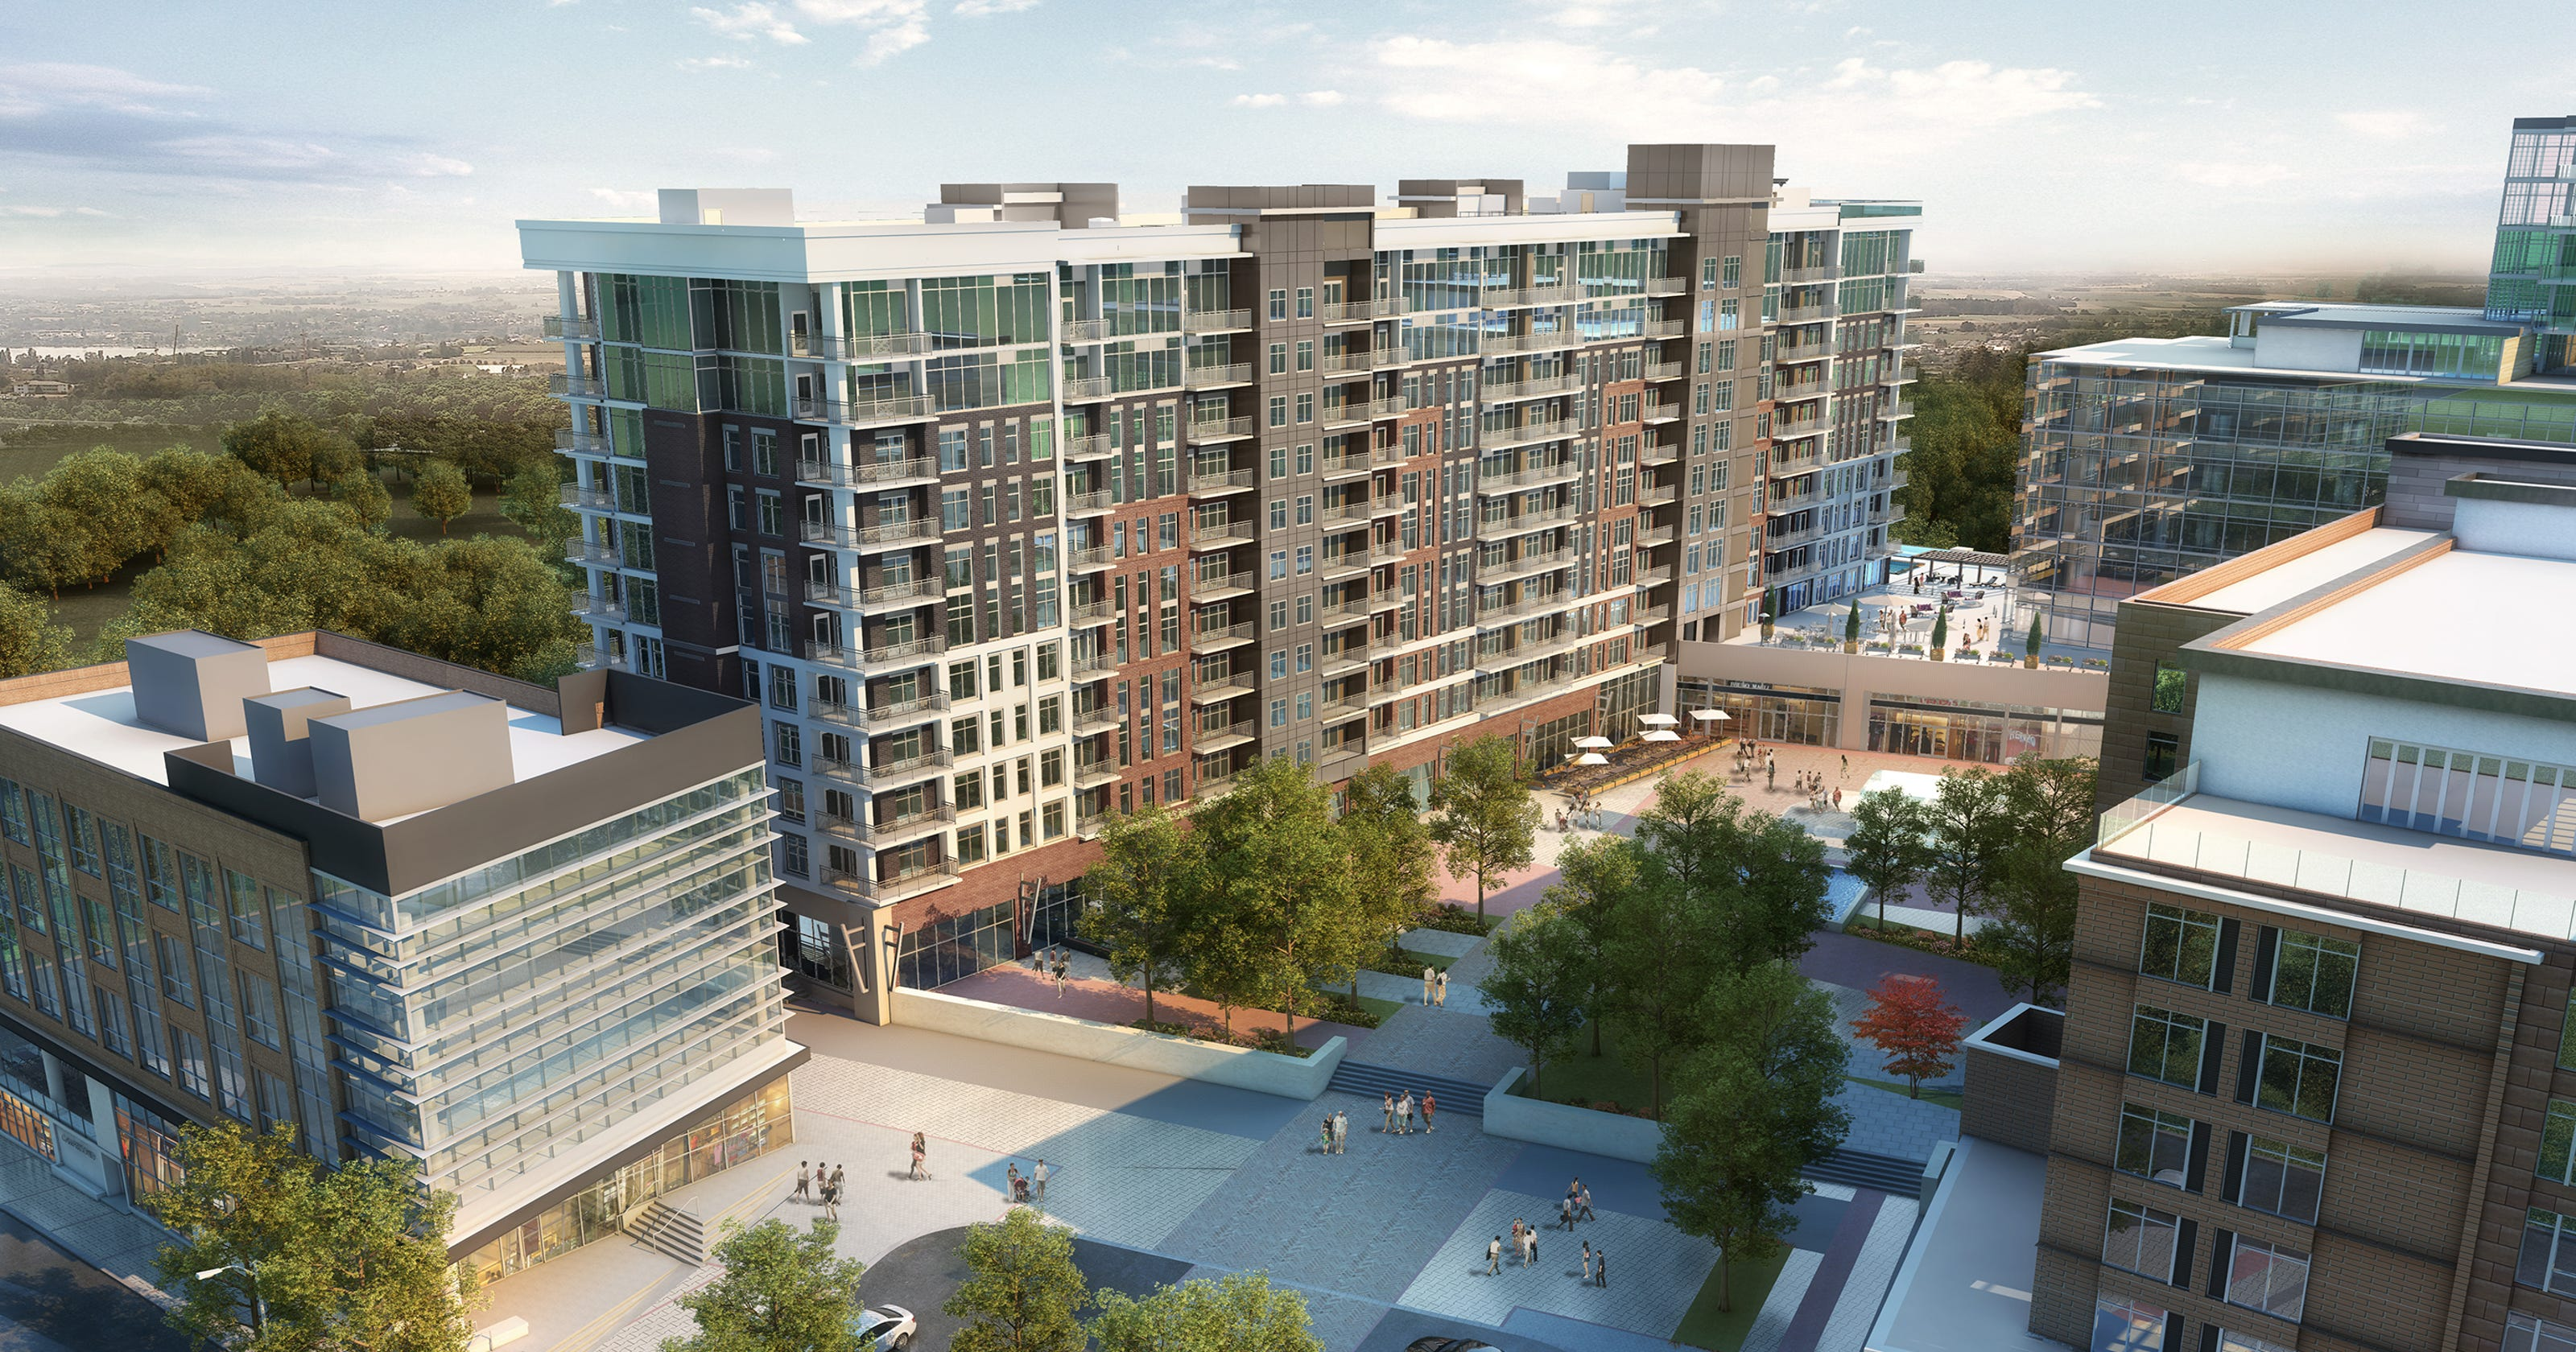 Camperdown apartments new renderings released for - 1 bedroom apartments greenville sc ...